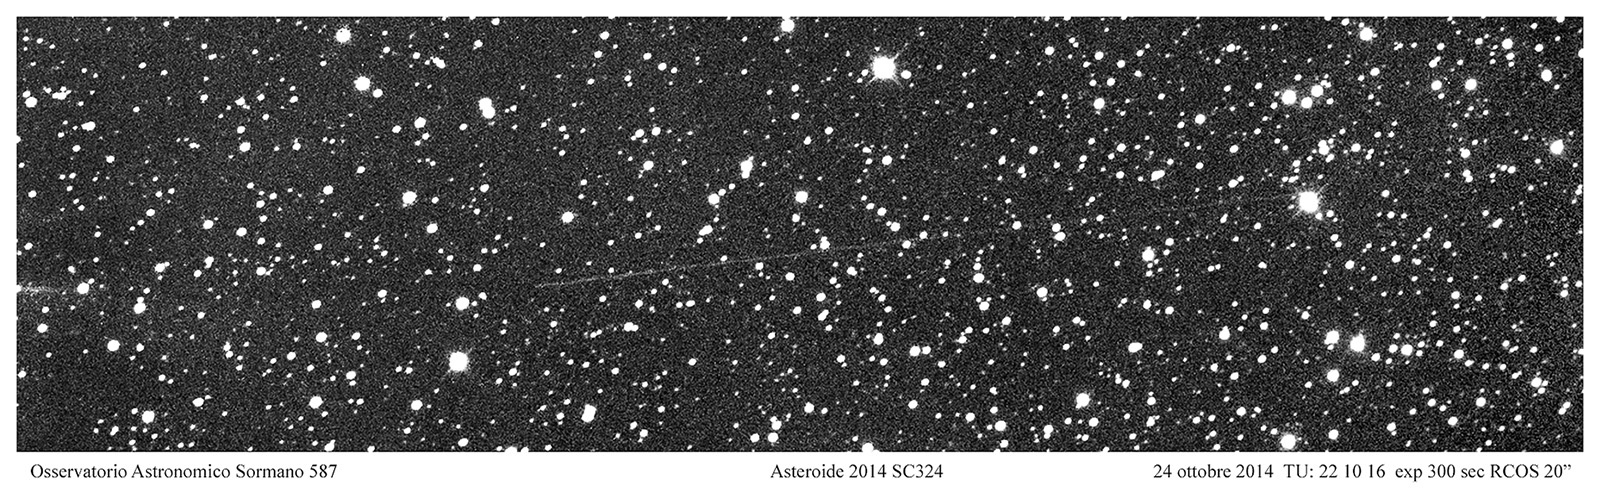 Asteroide 2014 SC324